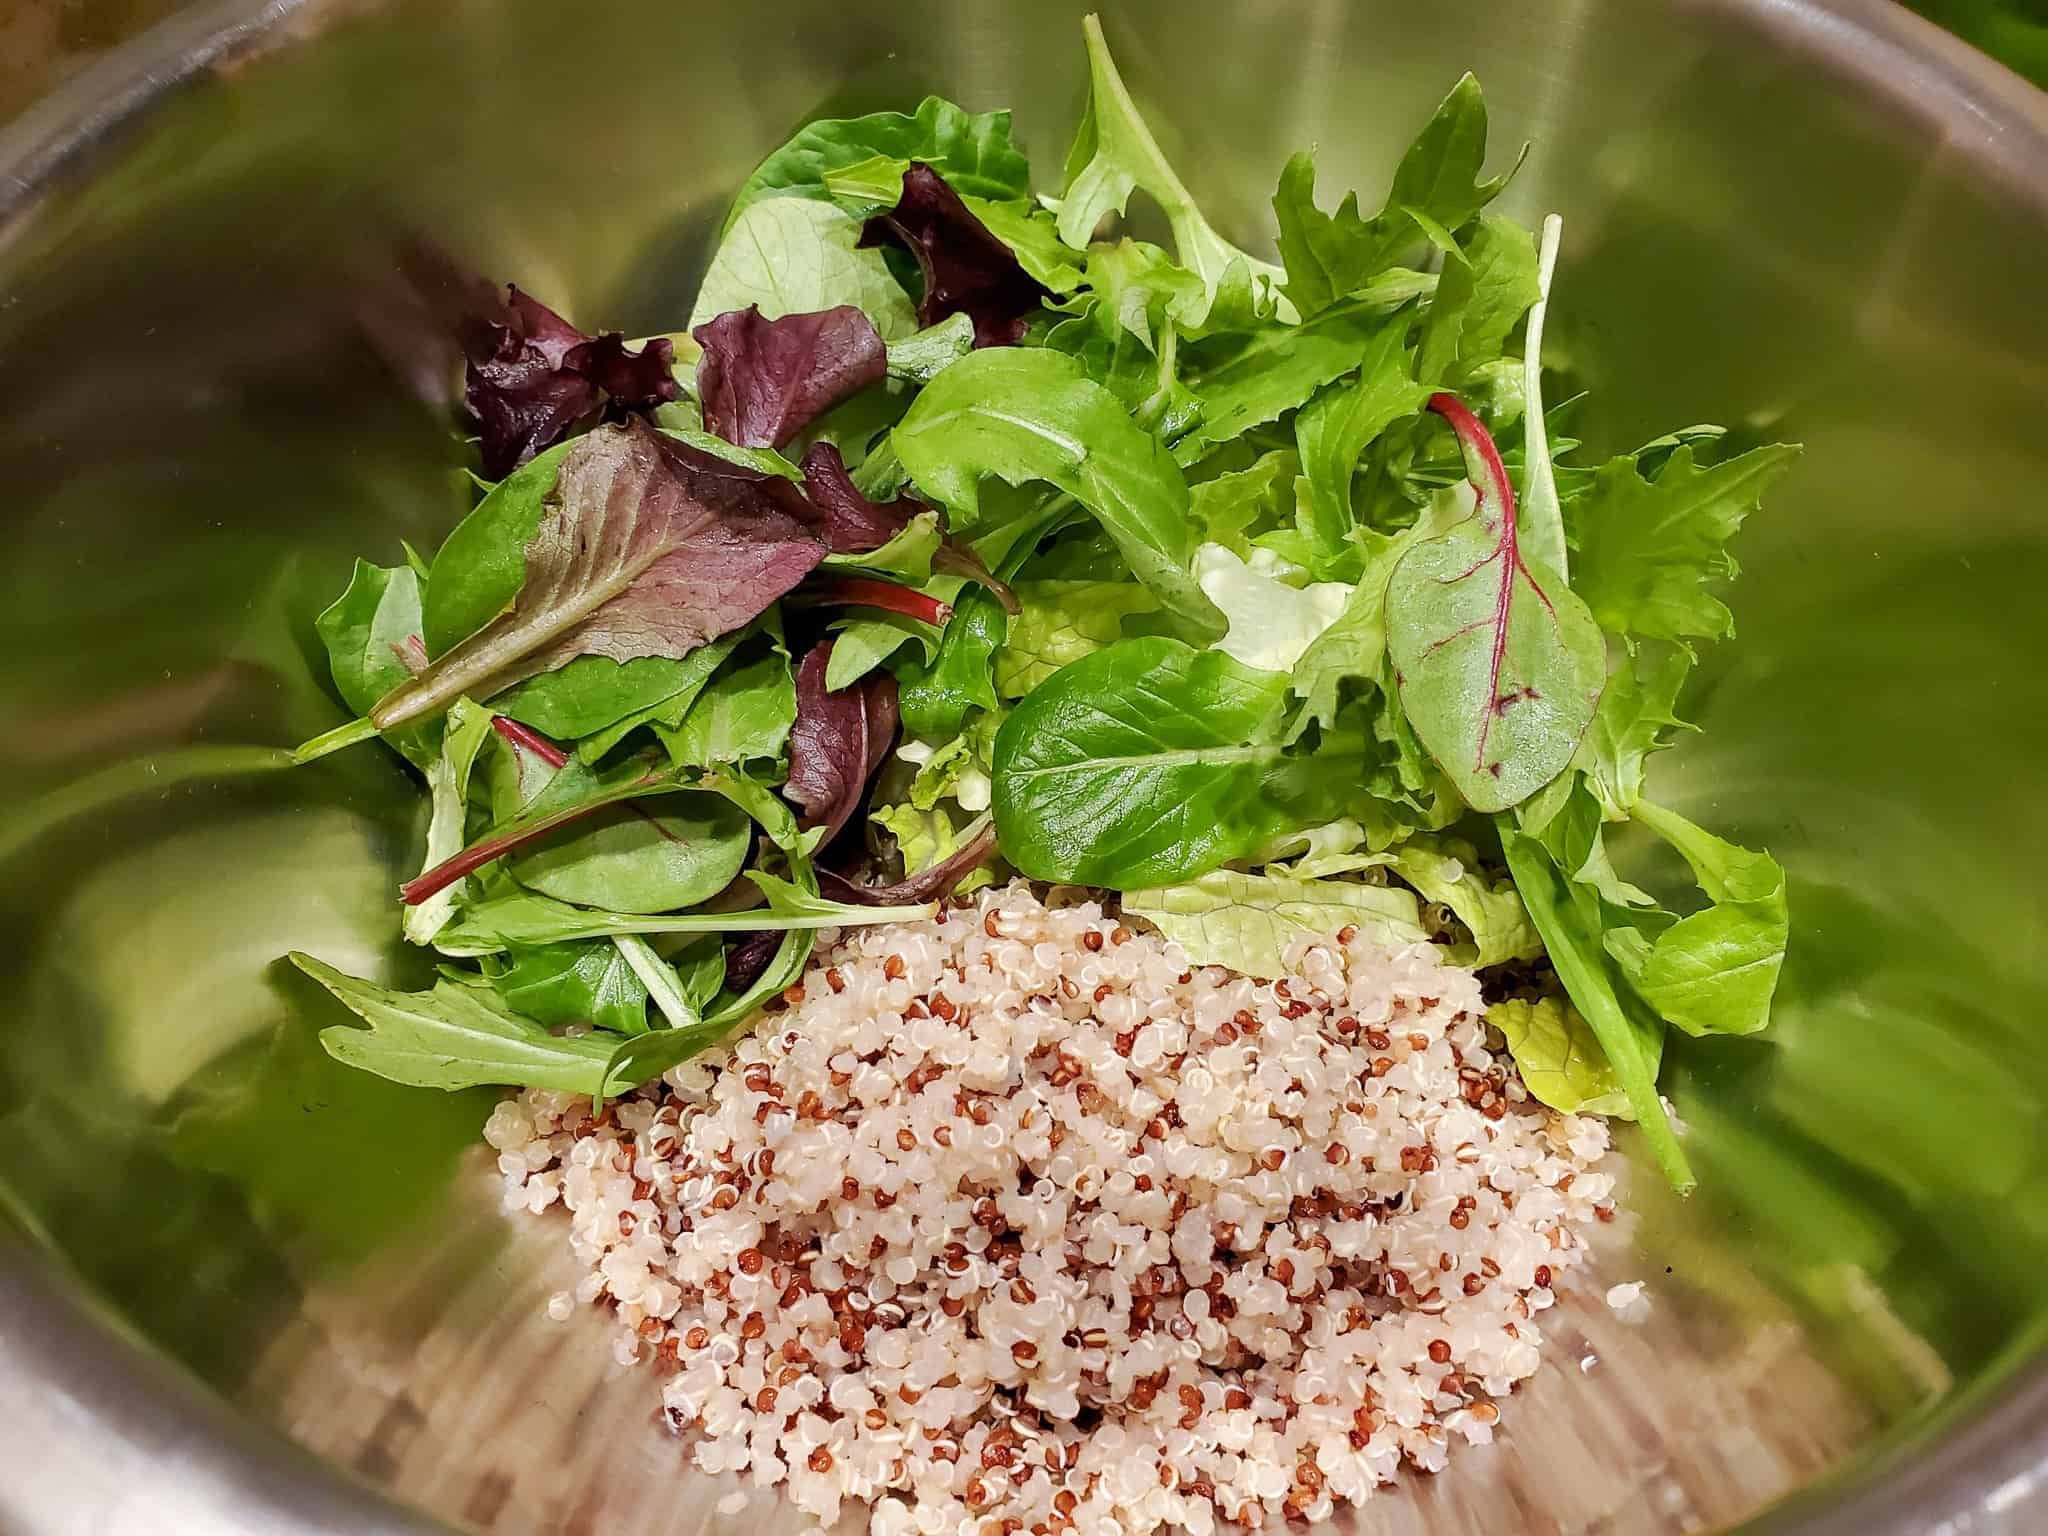 Quinoa and salad greens shown in a mixing bowl.